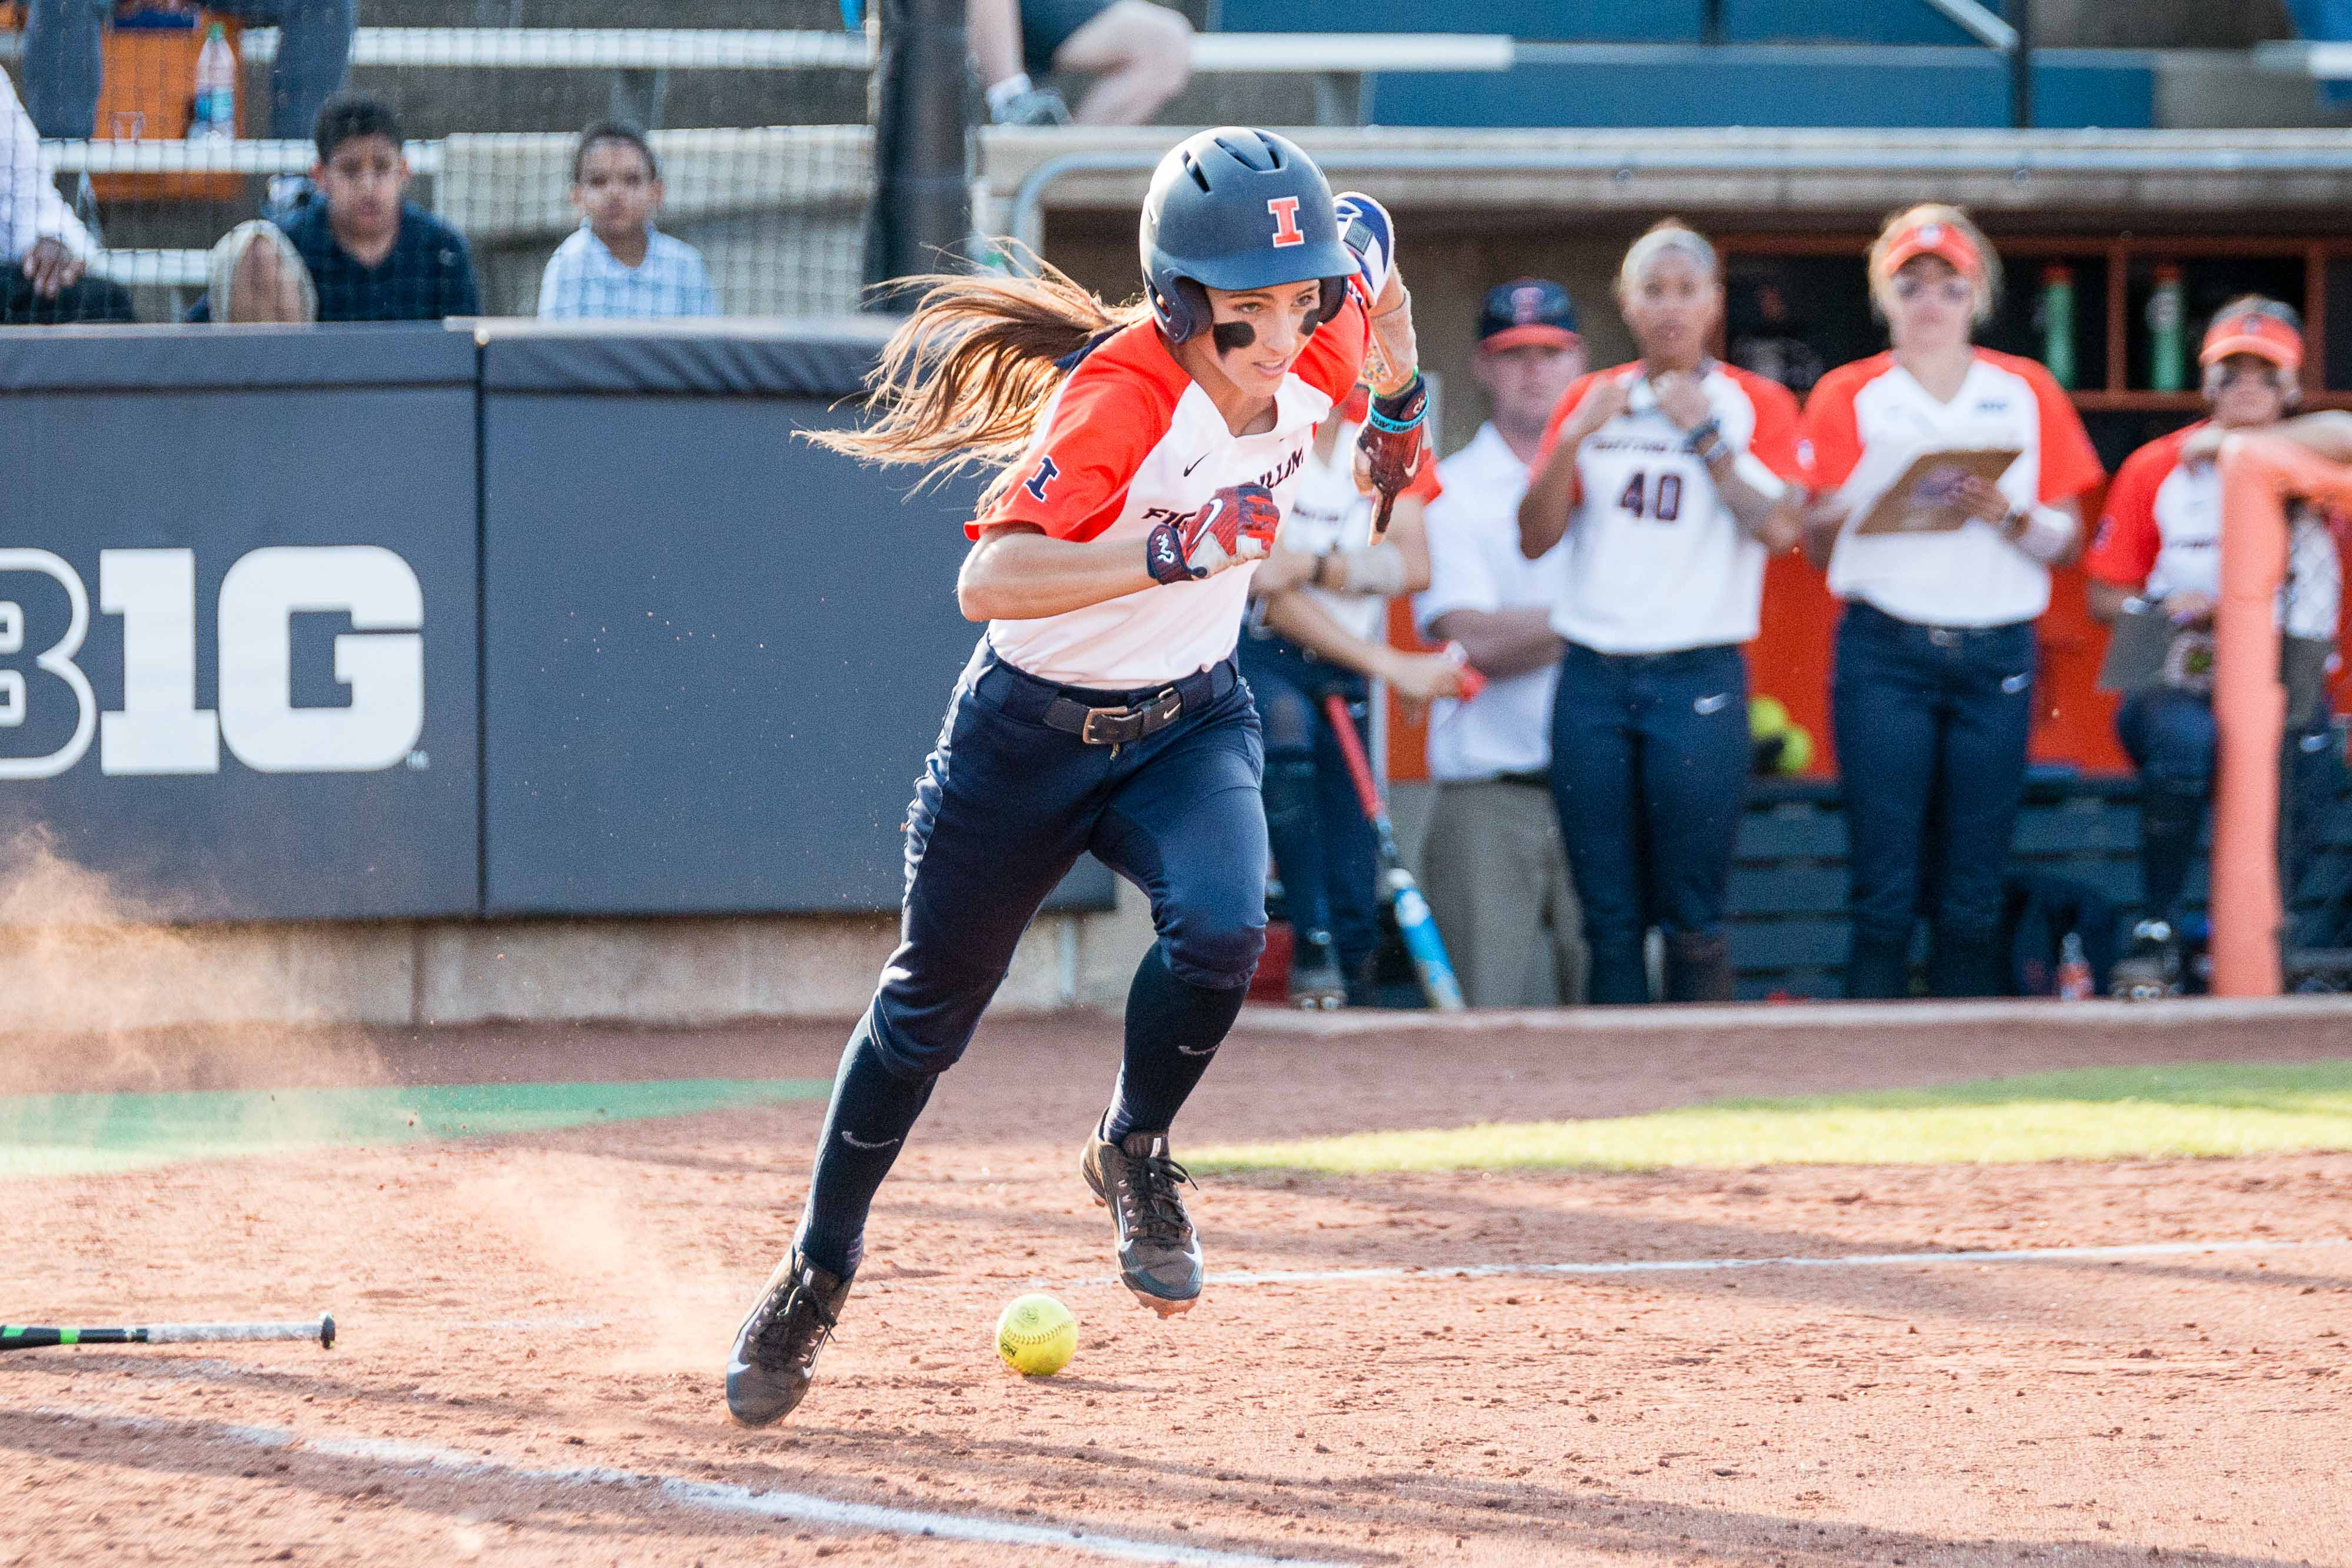 Illinois' Leigh Farina sprints to first after putting down a bunt against Butler at Eichelberger Field on Wednesday. Farina earned Illini of the Week honors after her performance against Michigan State last weekend.